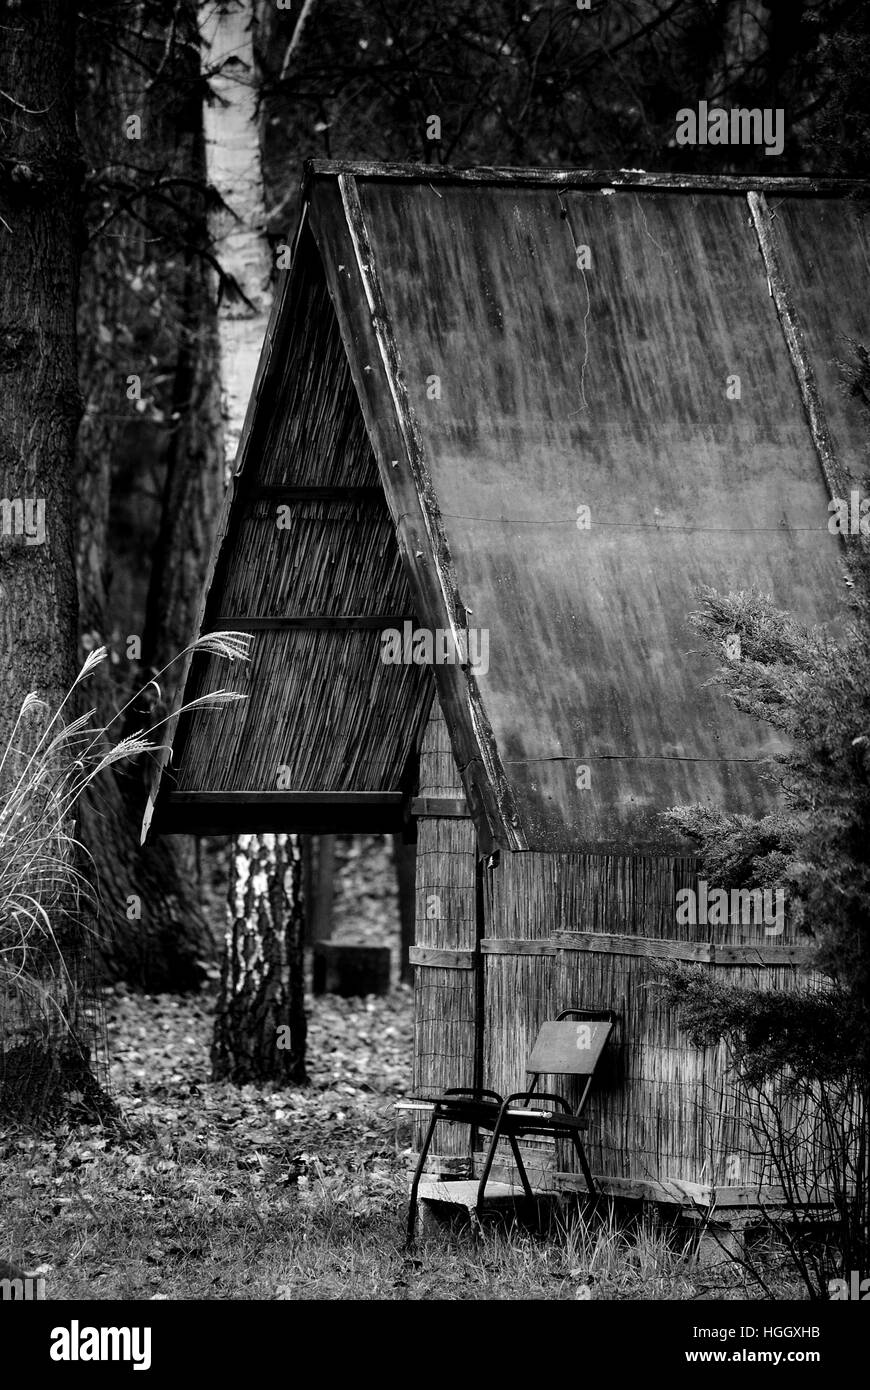 House, House in reed, BW house,Lake, peace,relax,chill,chilling,quiet,tree,fisher house, reflectionp,nice house, Stock Photo